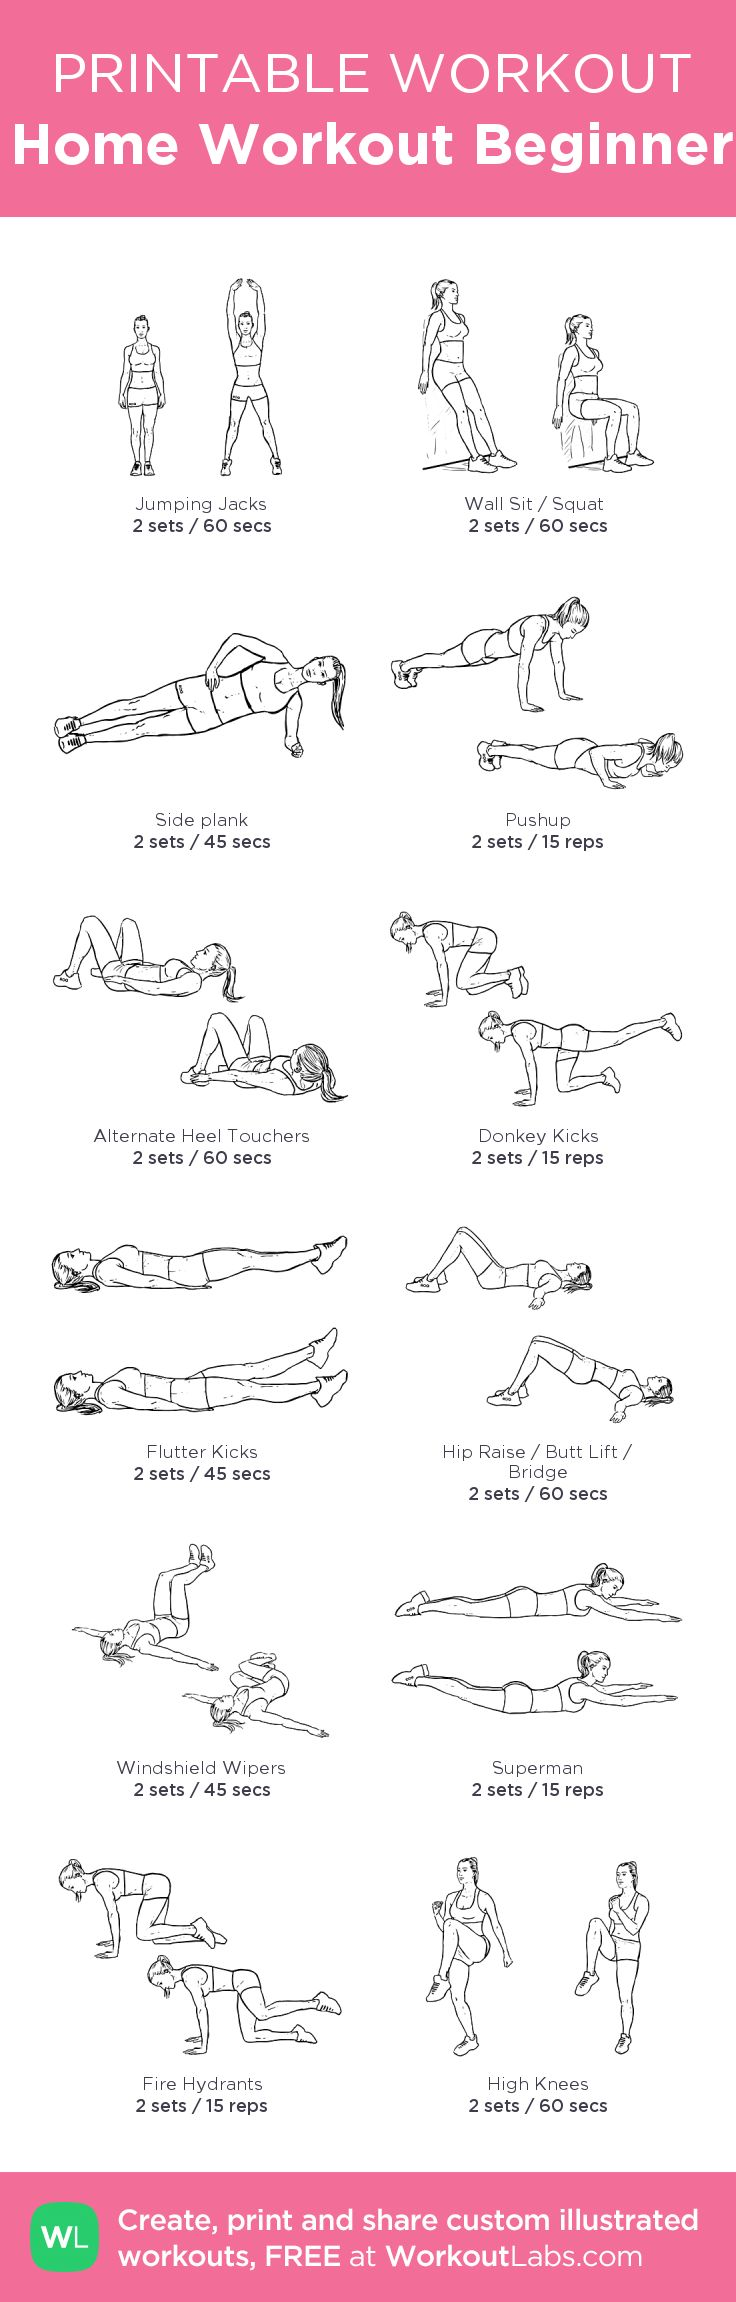 Exercise for a Healthy Heart | Cardio Workouts | Pinterest